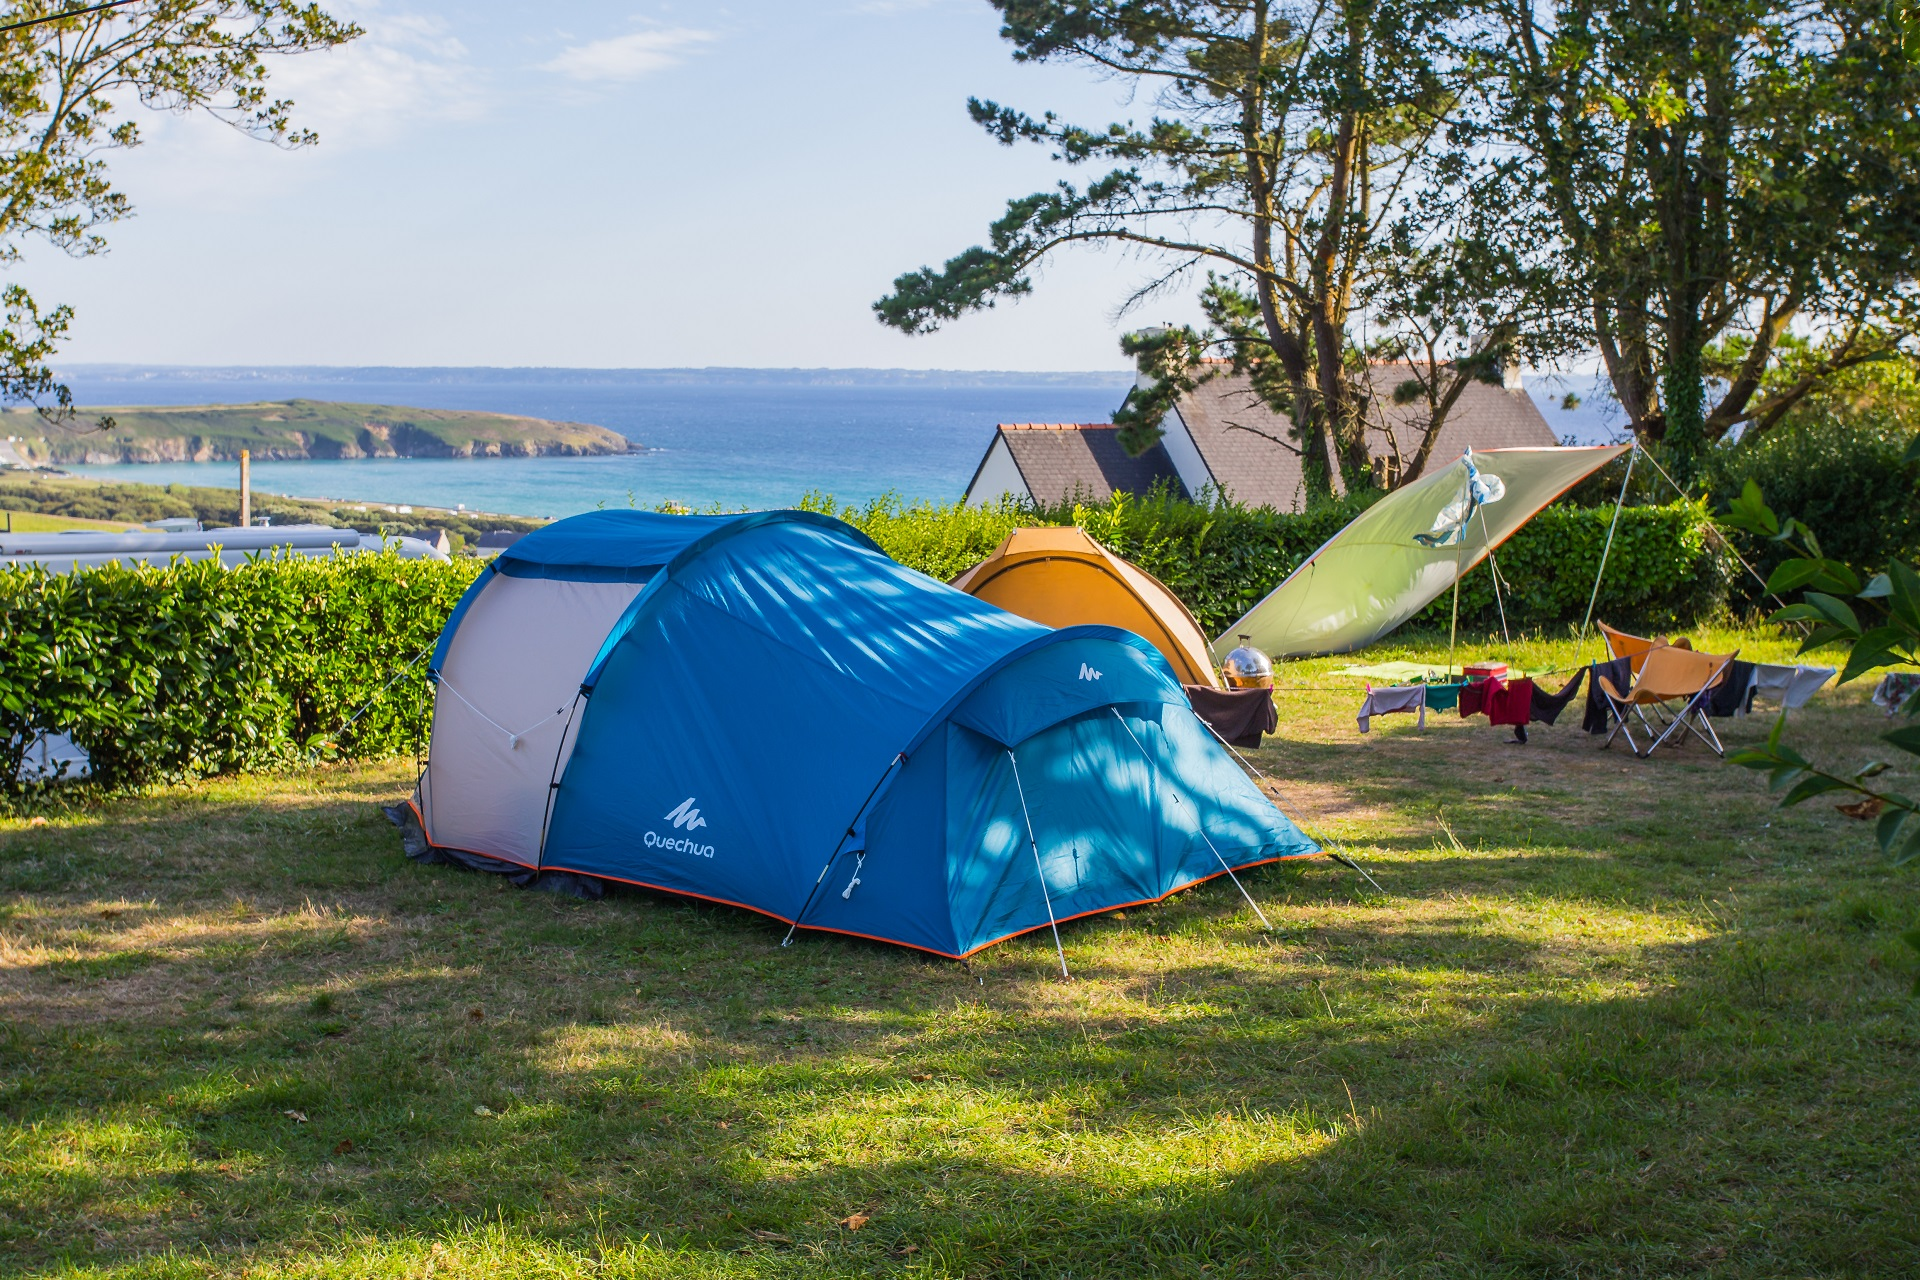 Emplacement - Forfait Nature (1 Voiture) - Camping Sites et Paysages Le Panoramic